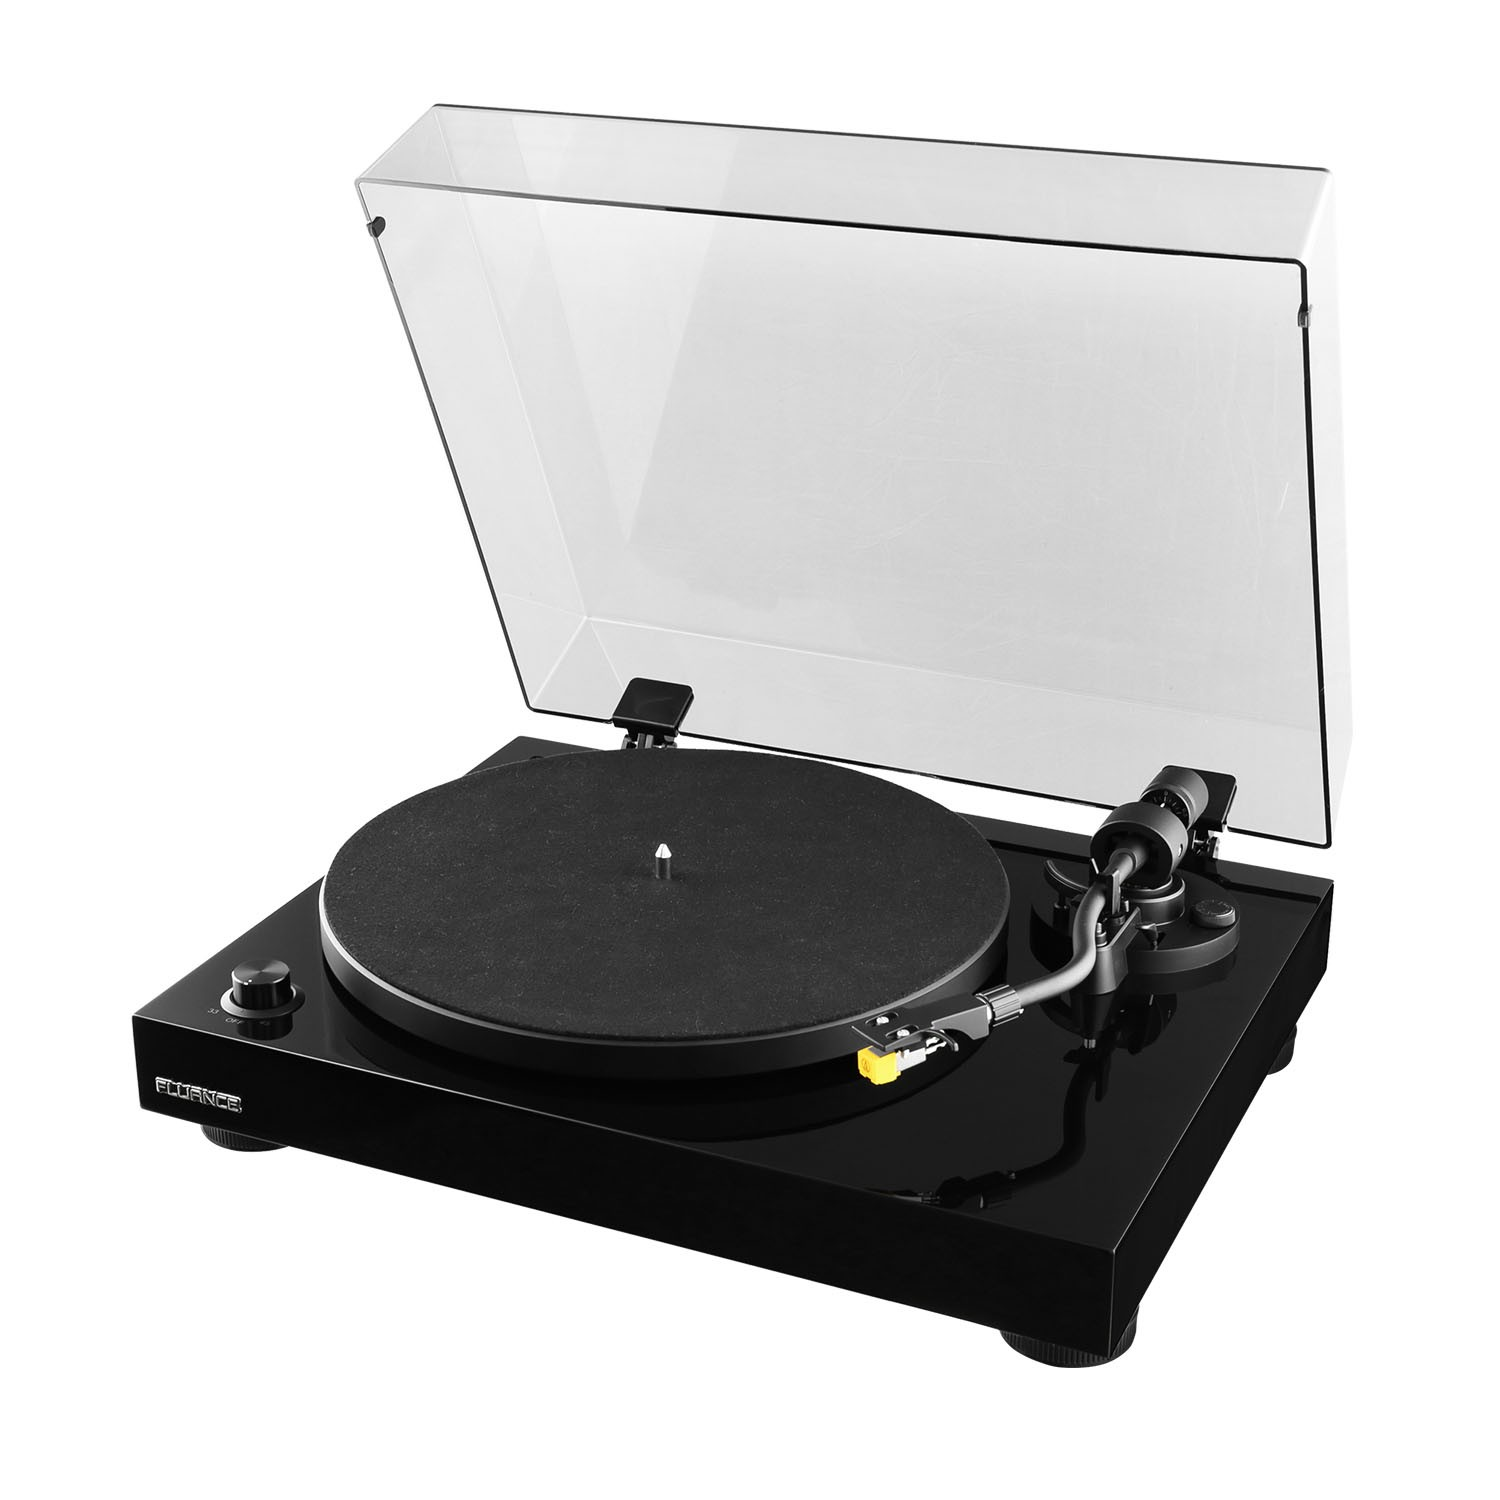 Fluance RT80 Piano Black Turntable Record Player Main